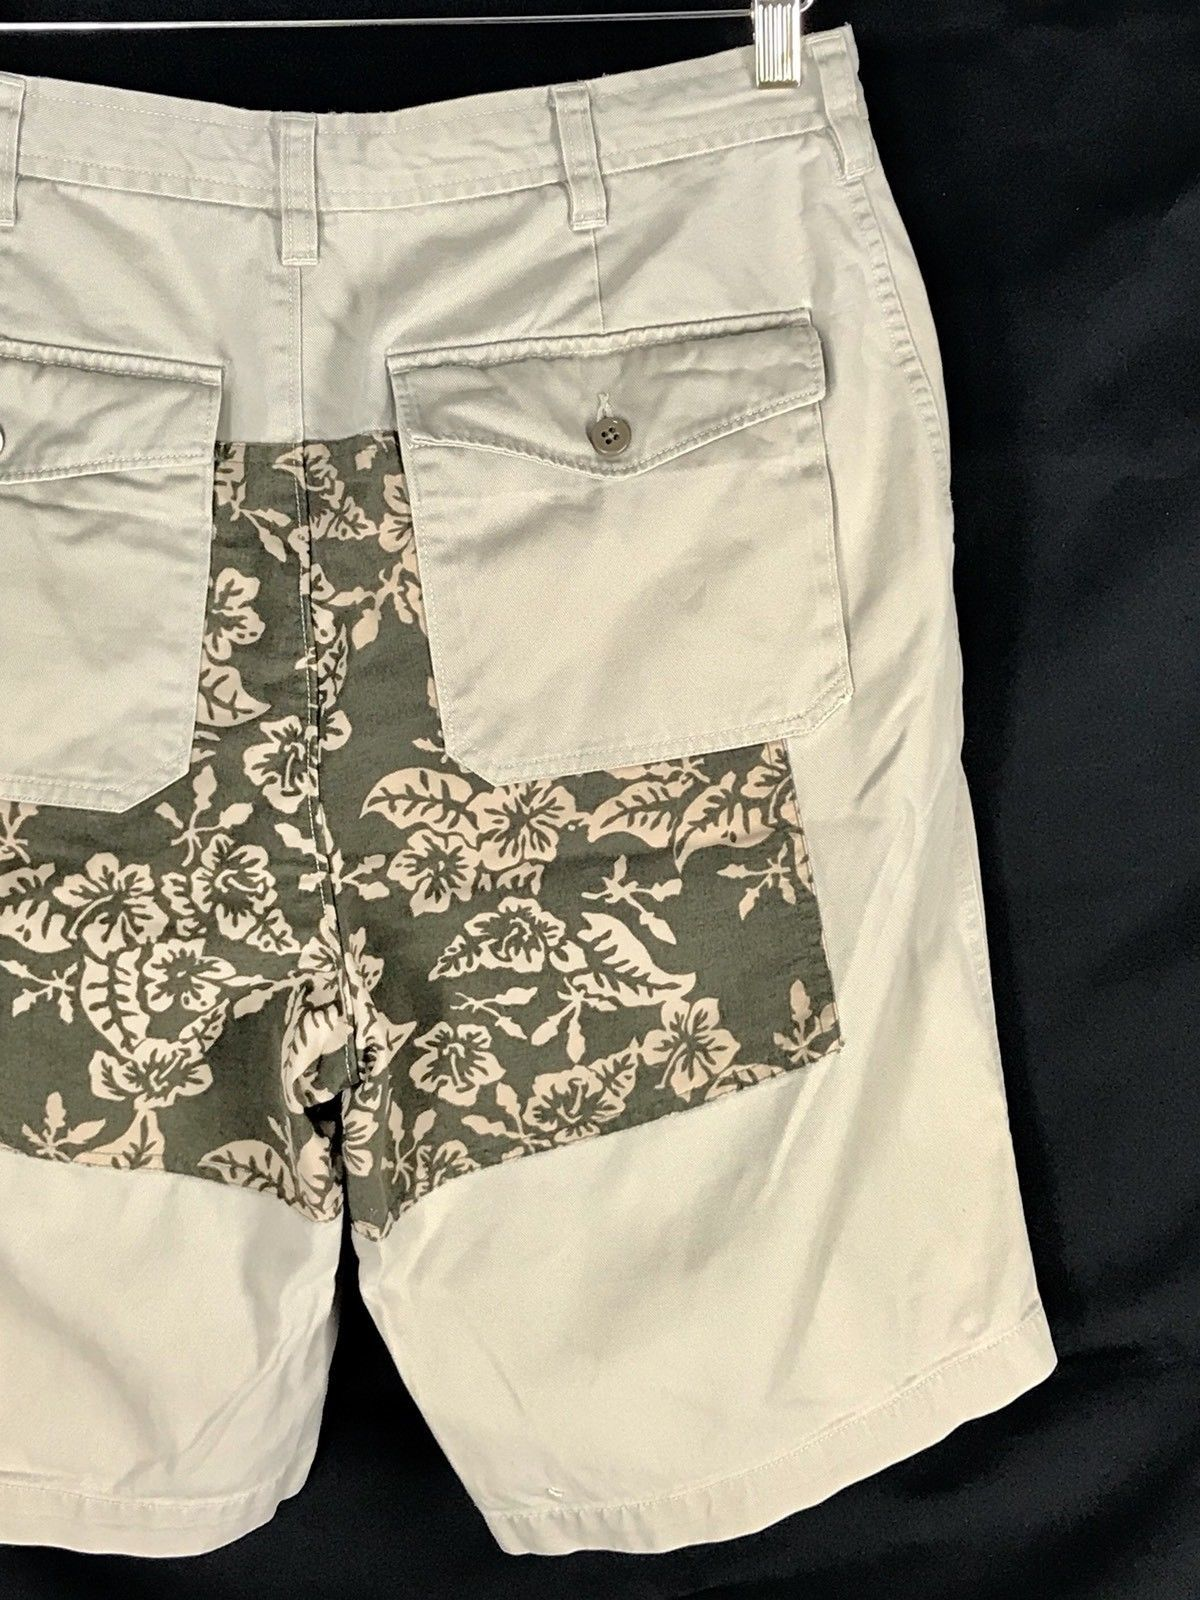 Tommy Hilfiger Shorts Khaki With Floral Back Panel Flat Front Mens Size 32